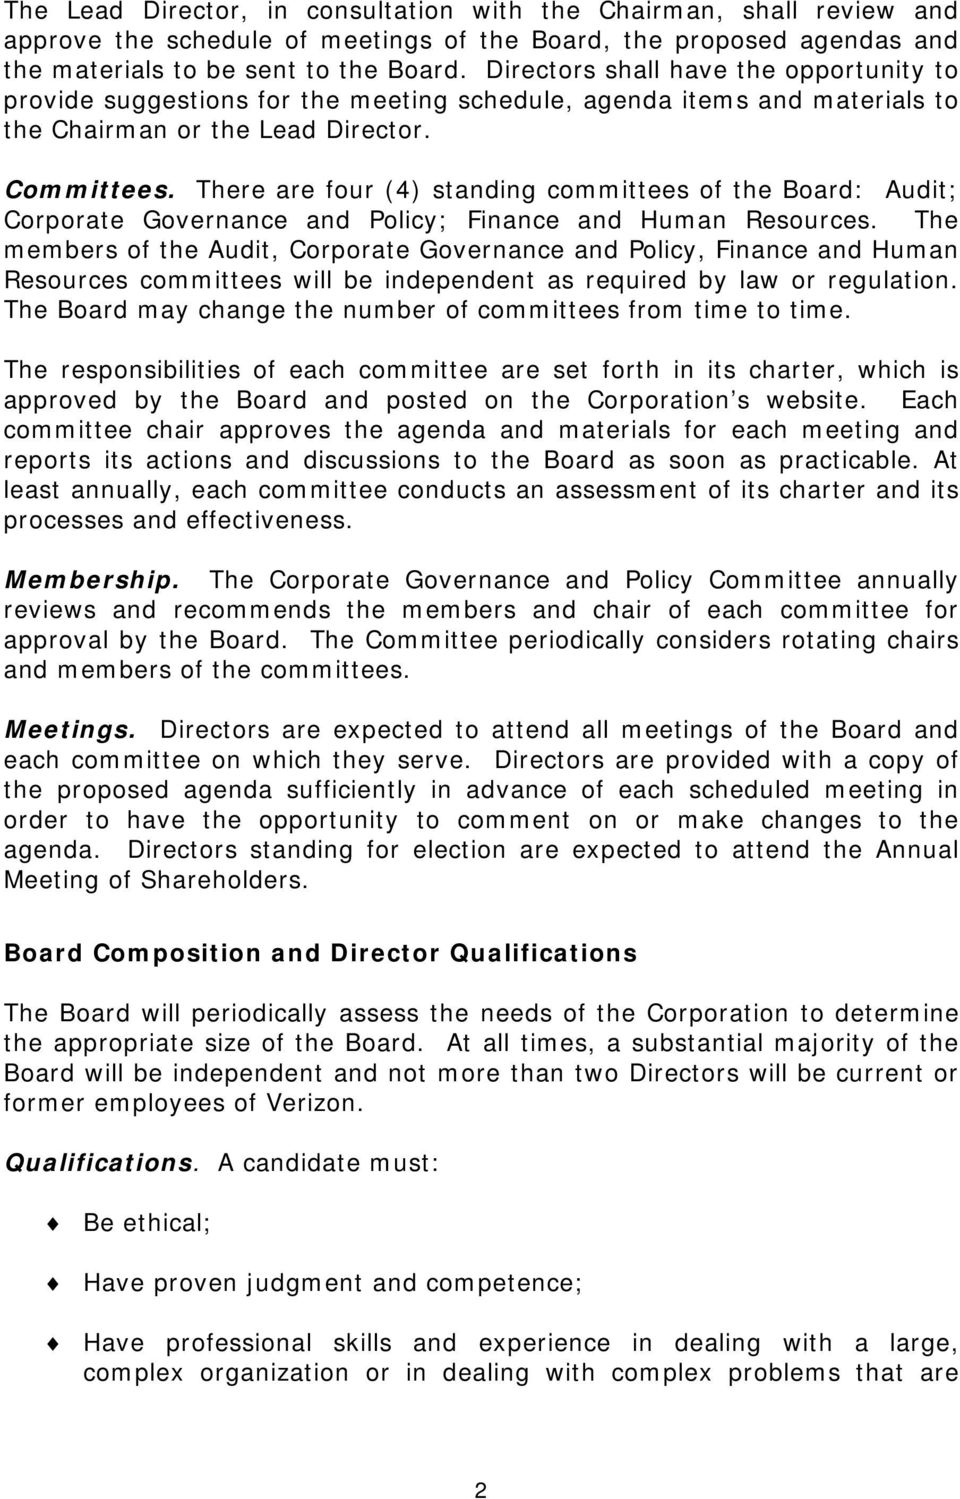 There are four (4) standing committees of the Board: Audit; Corporate Governance and Policy; Finance and Human Resources.